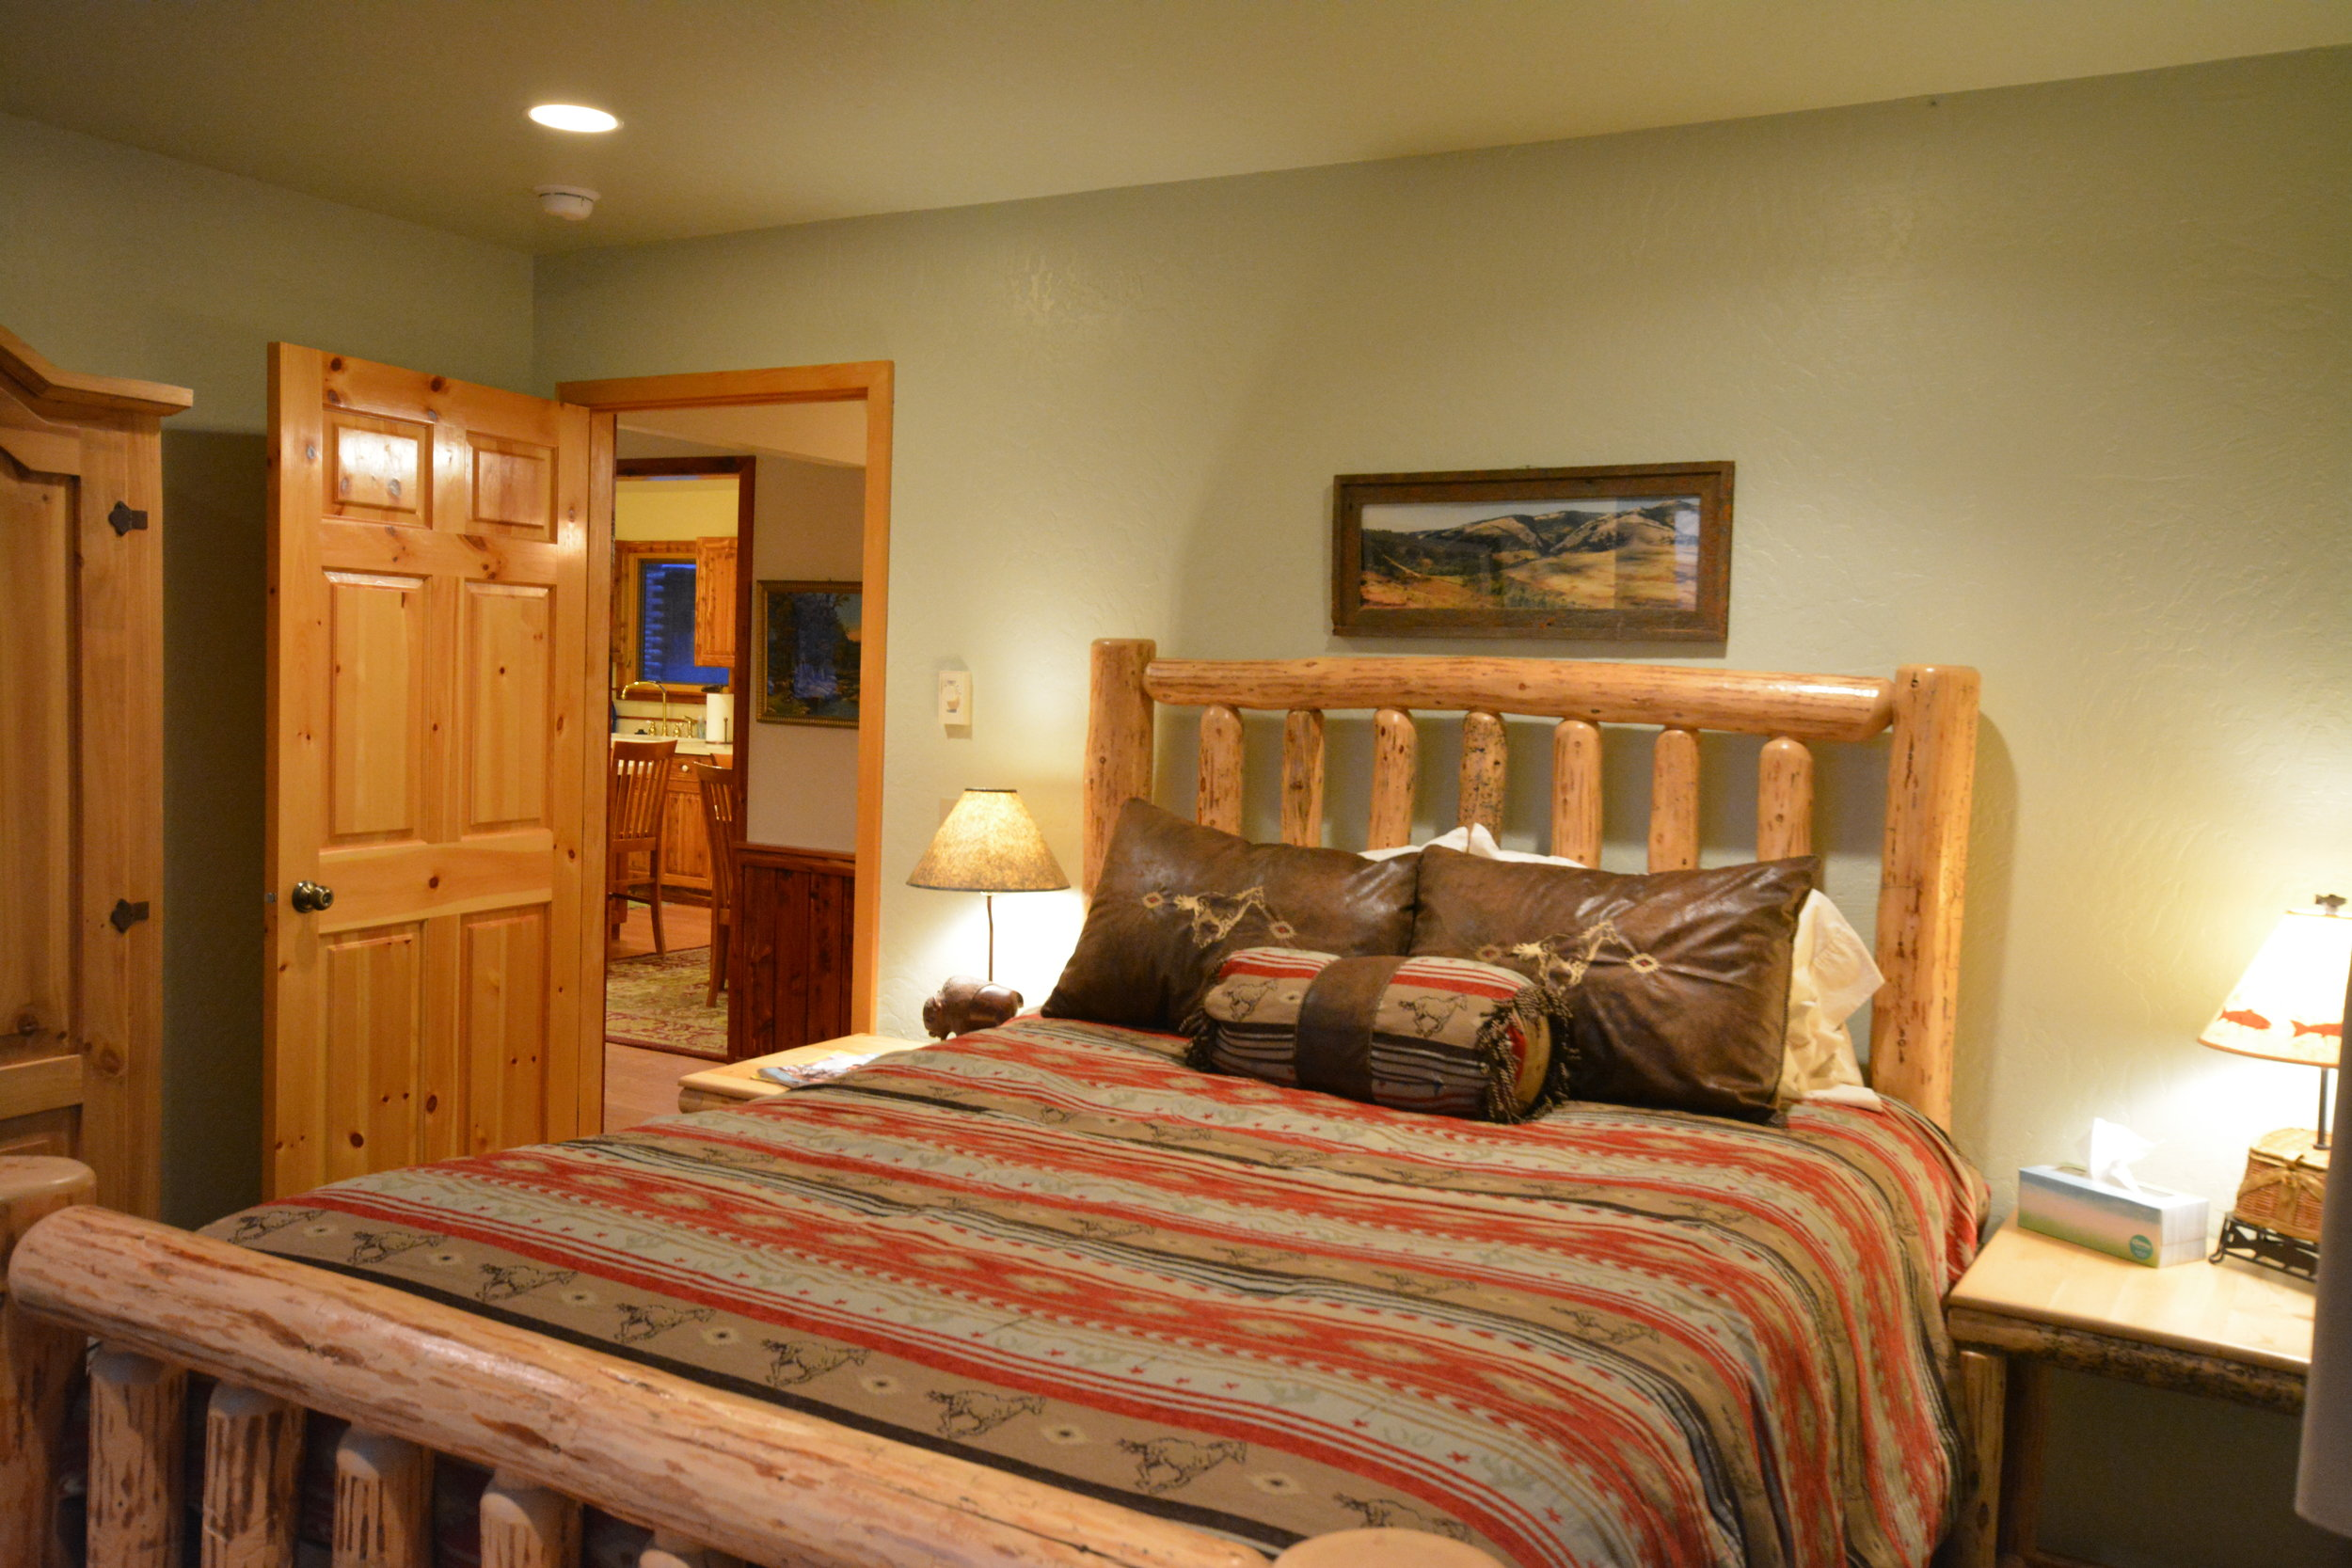 southeast bedroom3.JPG